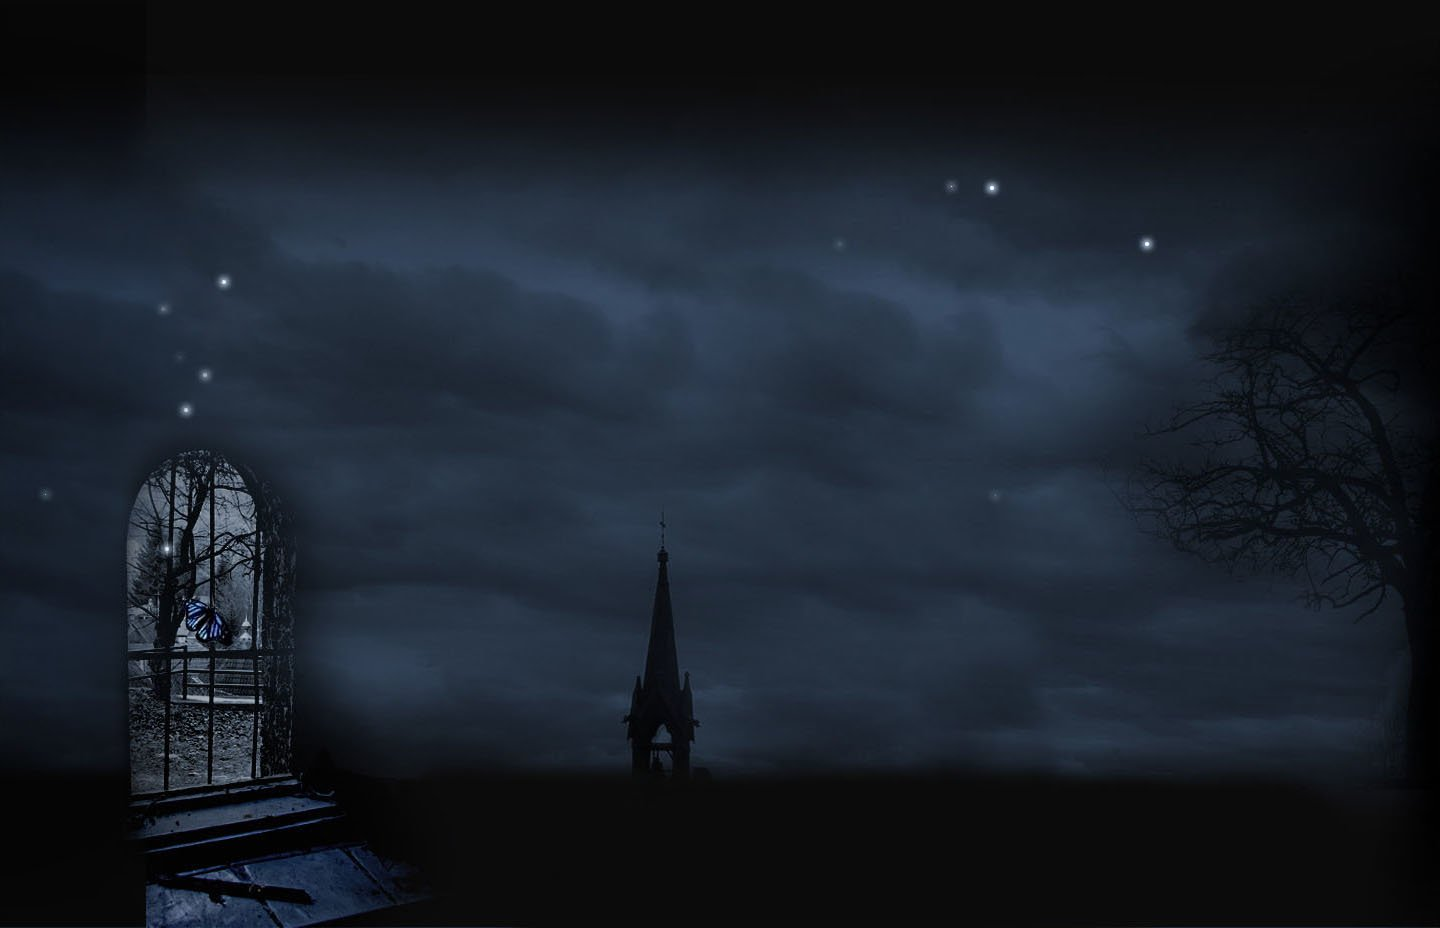 Dark - Building  Dark Castle Wallpaper